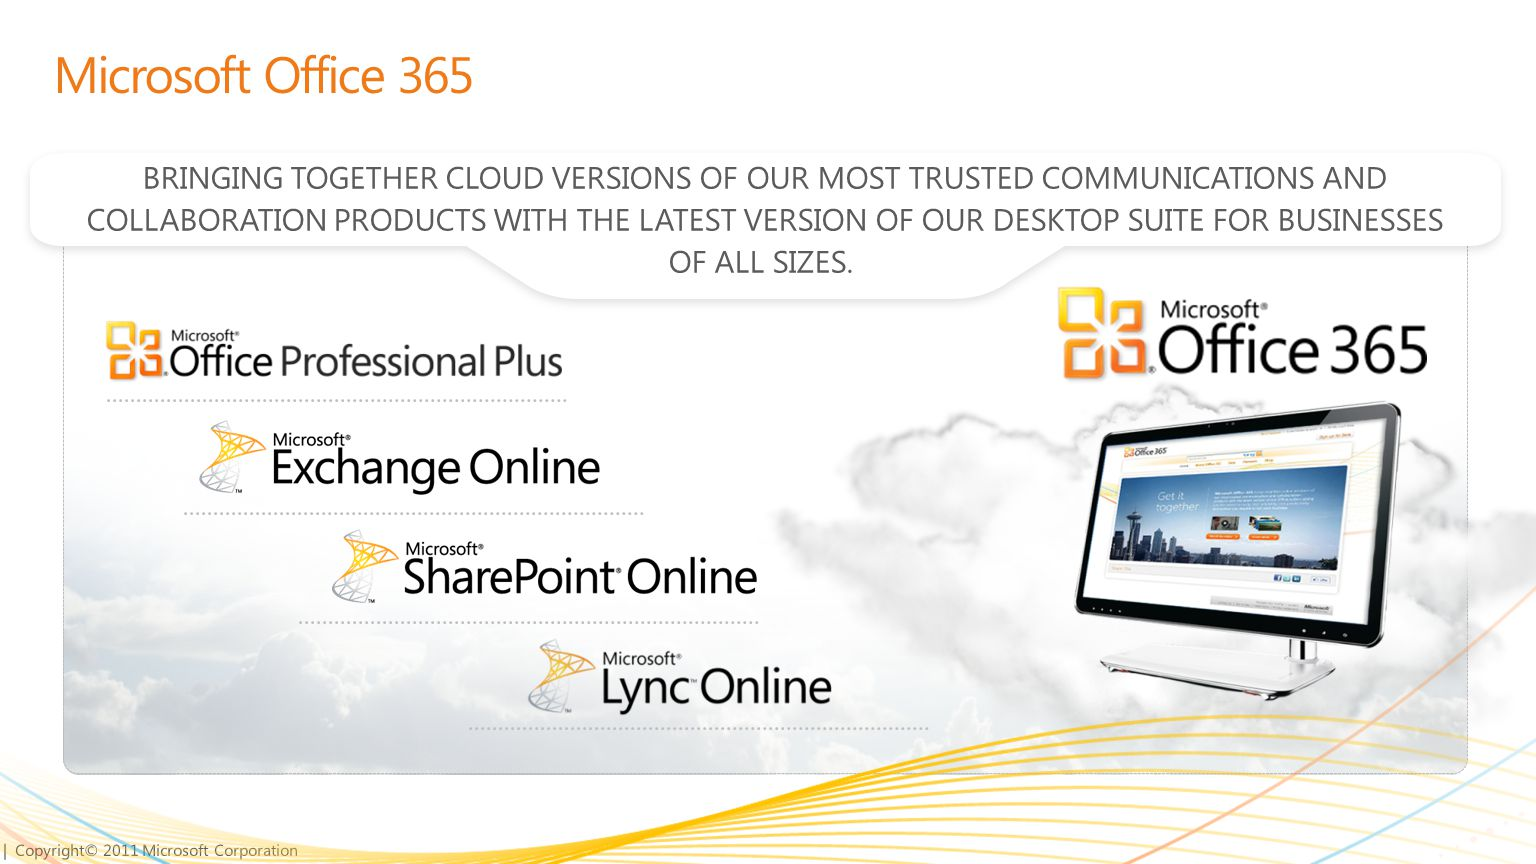 | Copyright© 2011 Microsoft Corporation Microsoft Office 365 BRINGING TOGETHER CLOUD VERSIONS OF OUR MOST TRUSTED COMMUNICATIONS AND COLLABORATION PRODUCTS WITH THE LATEST VERSION OF OUR DESKTOP SUITE FOR BUSINESSES OF ALL SIZES.